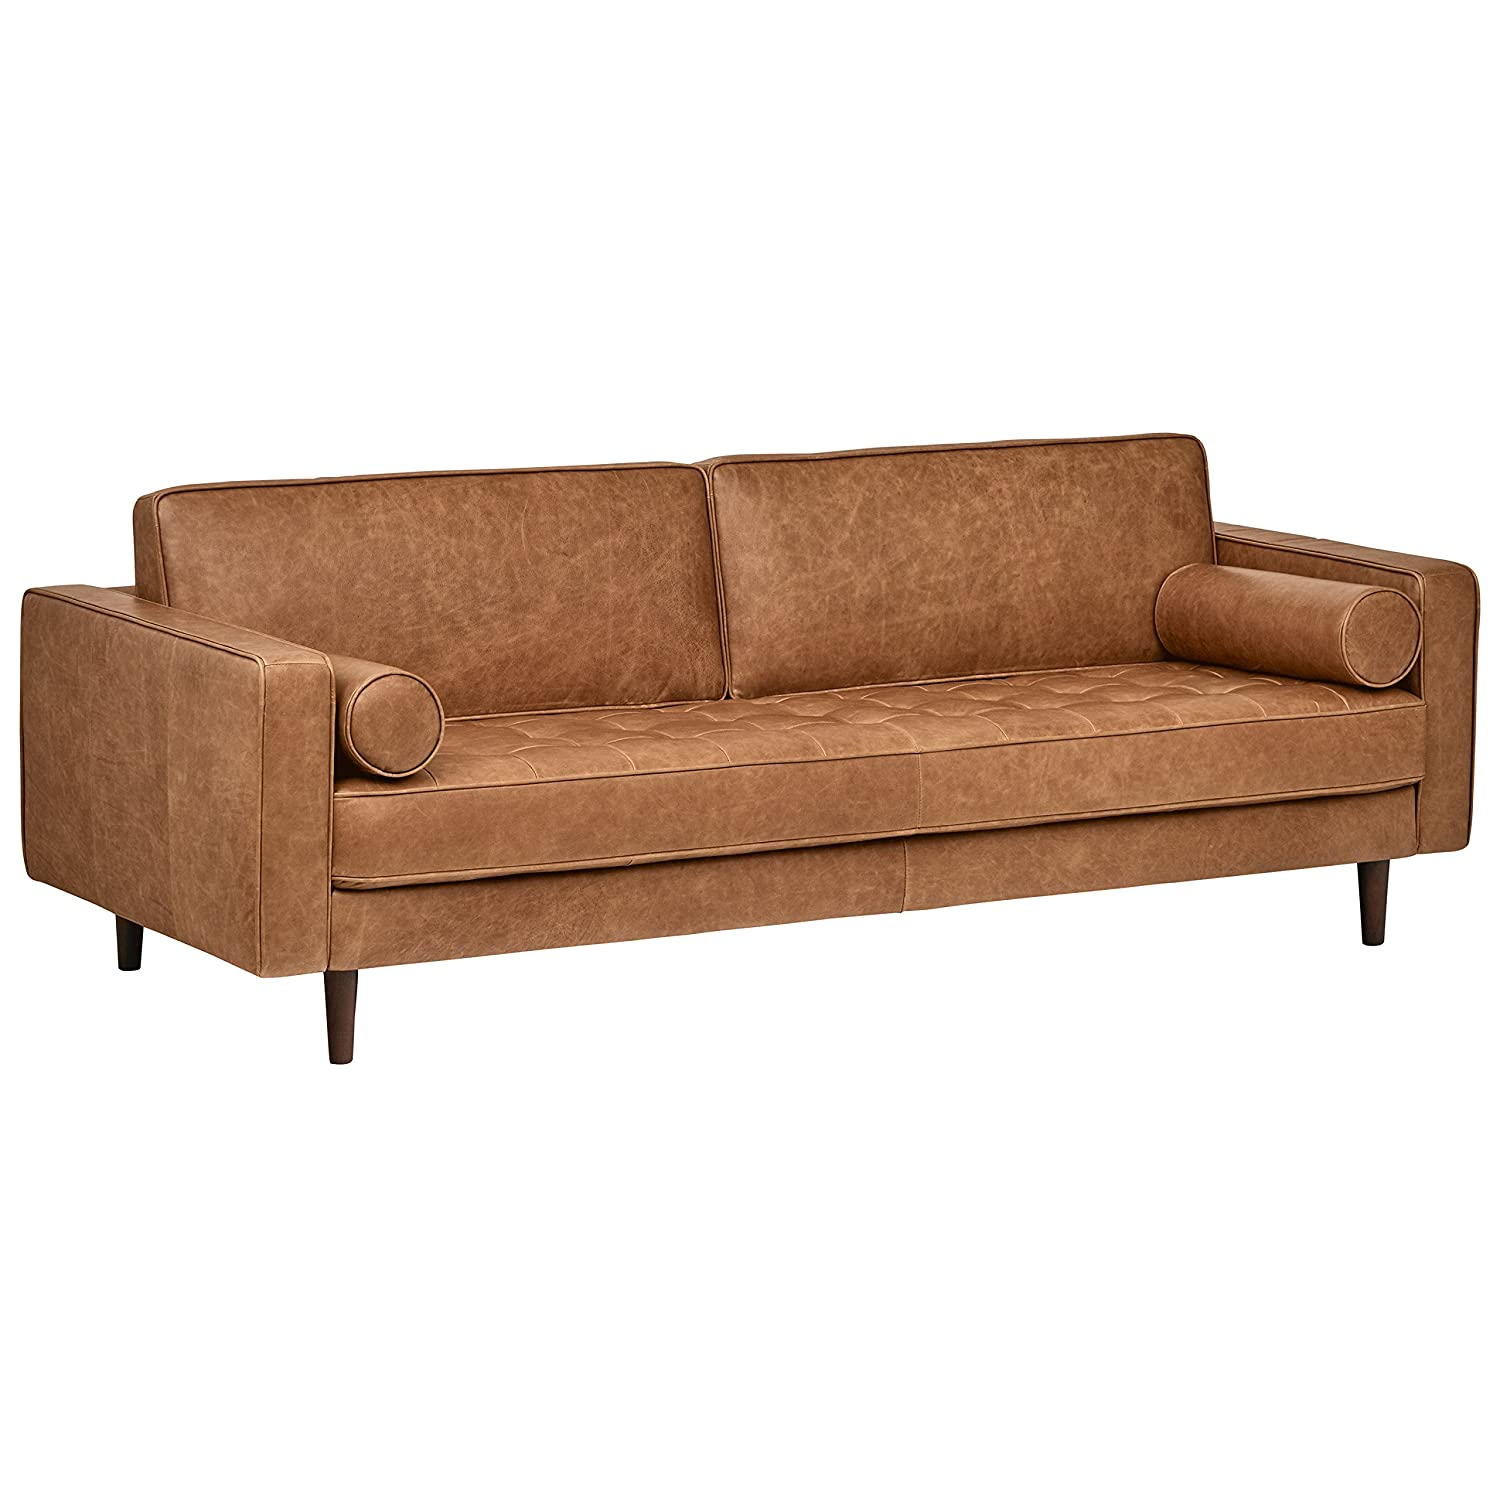 Rivet Aiden Tufted Mid-Century Modern Leather Bench Seat Sofa, 86.6